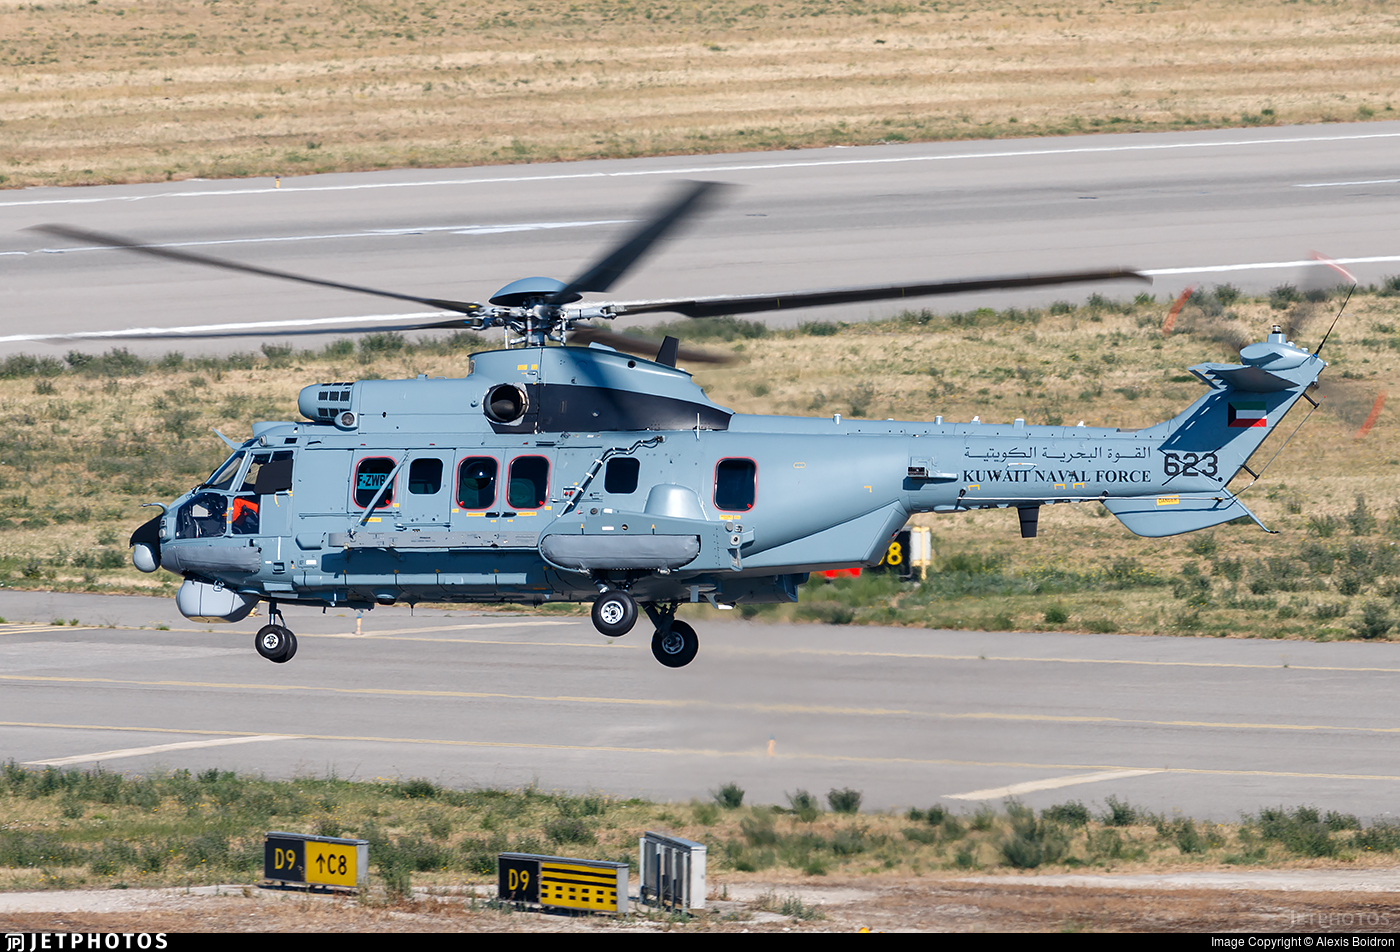 F-ZWBD - Airbus Helicopters H225M - Kuwait - Naval Force